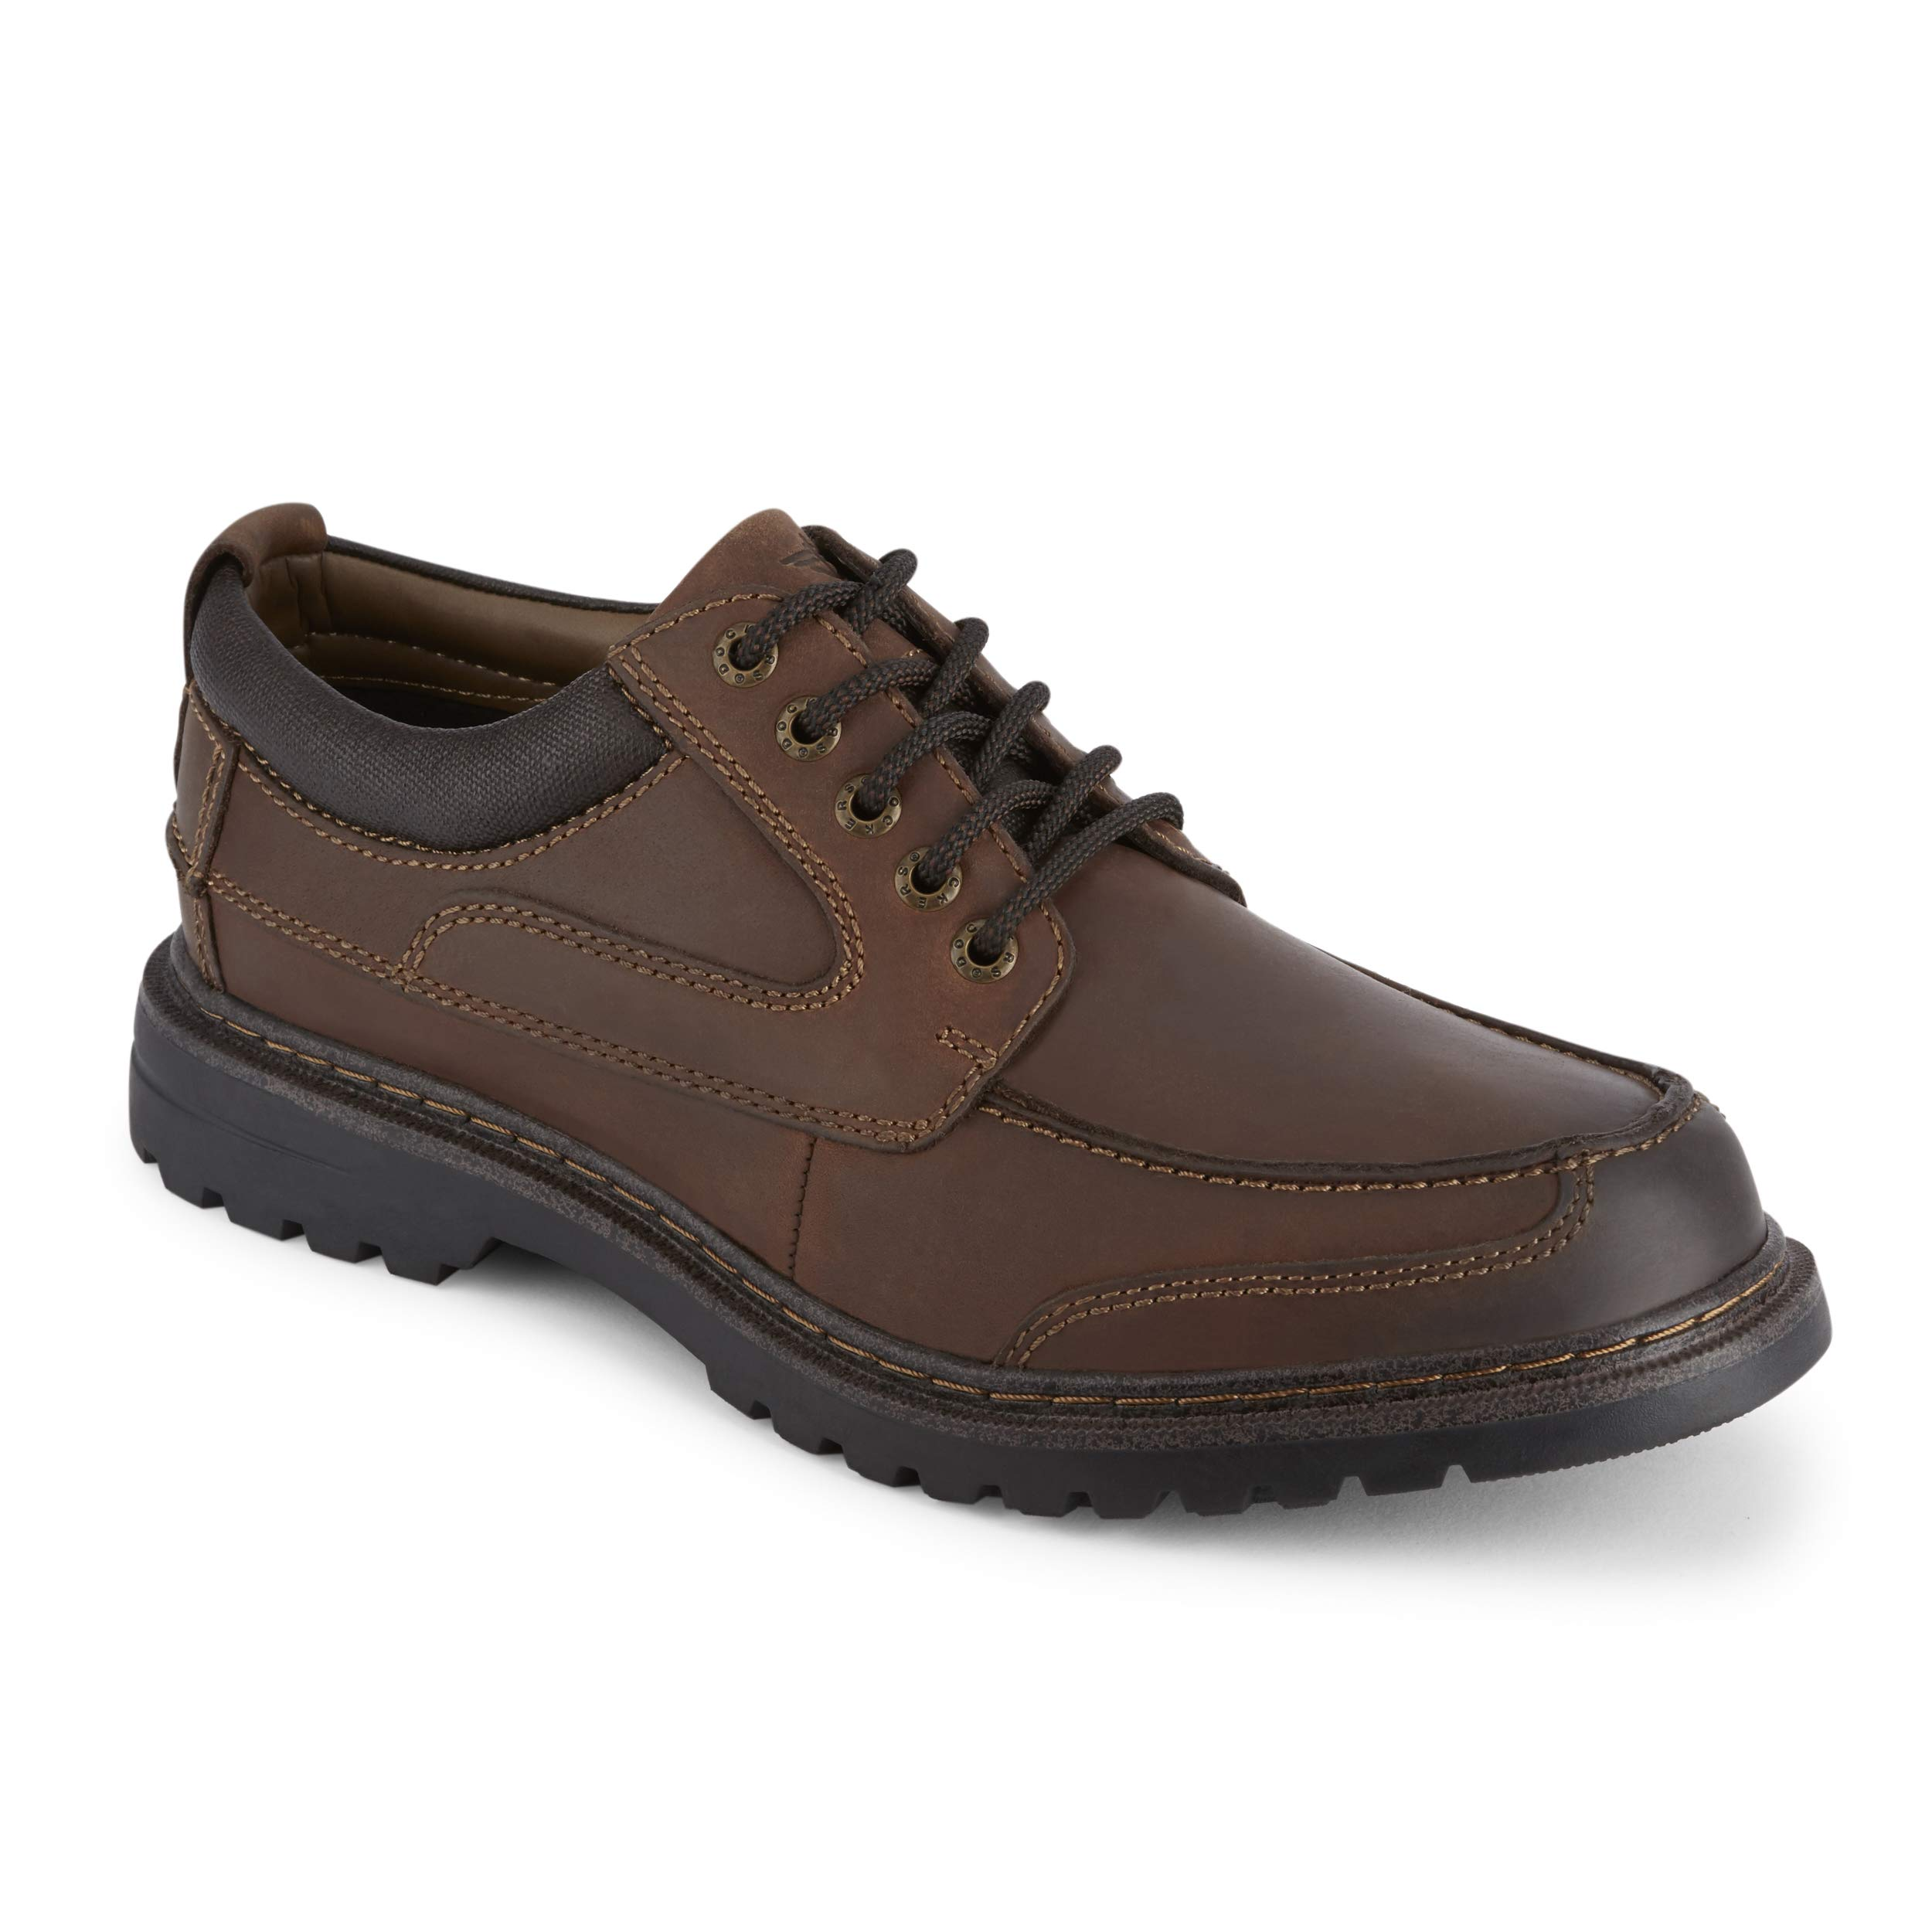 Dockers Men's Overton NeverWet Oxford Shoes, Red Brown - 10 W by Dockers